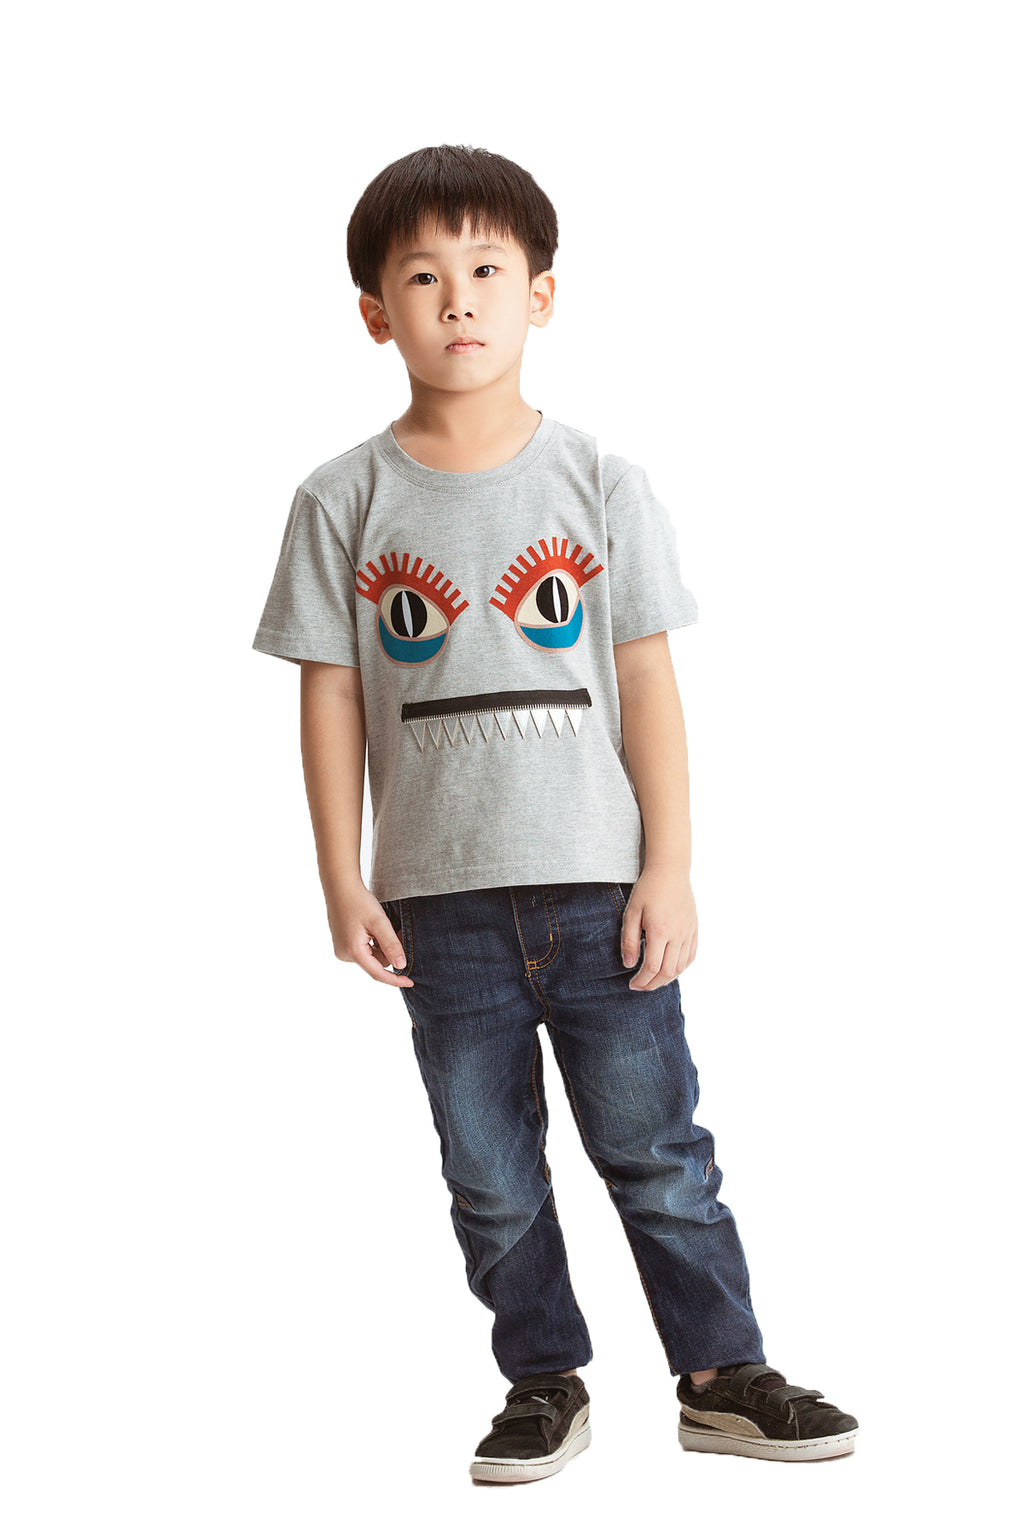 Little Mons T-Shirt for Kids - Grey